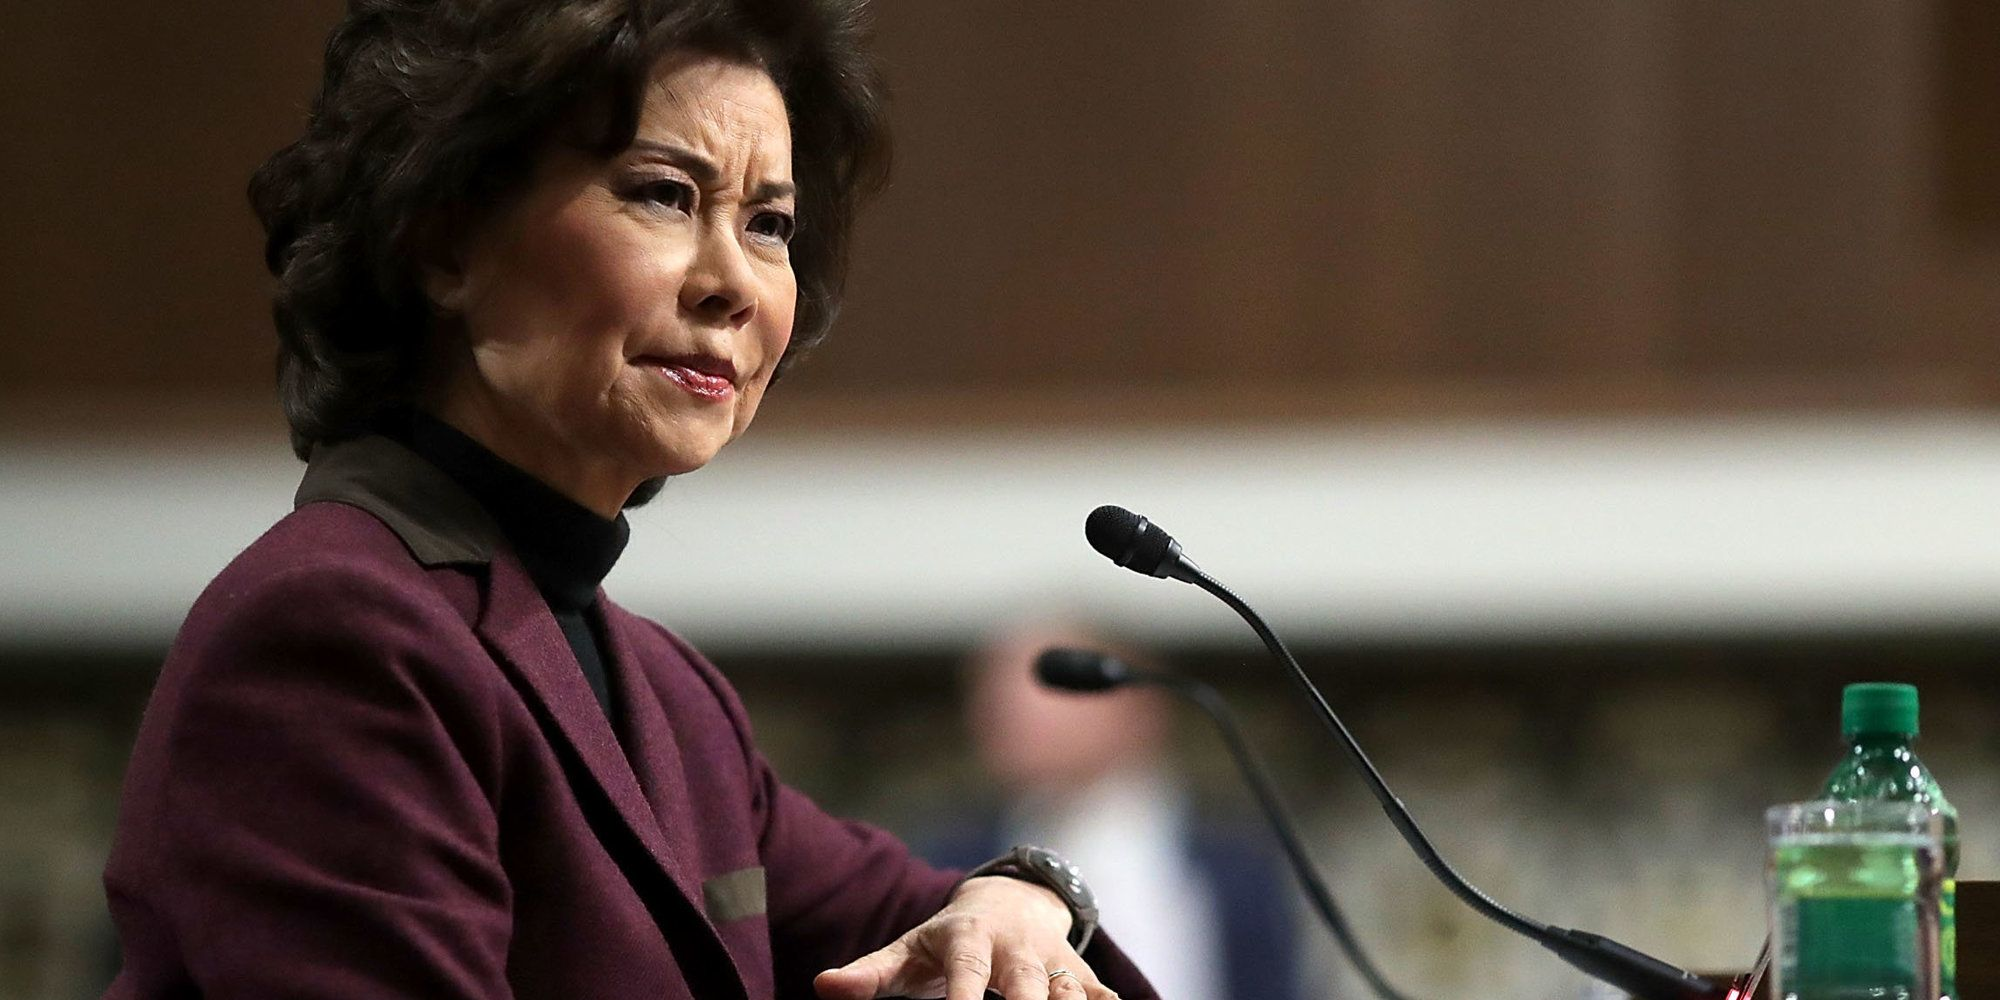 Trump's Transportation Secretary Swears She Doesn't Want To 'Sue His Very Soul'